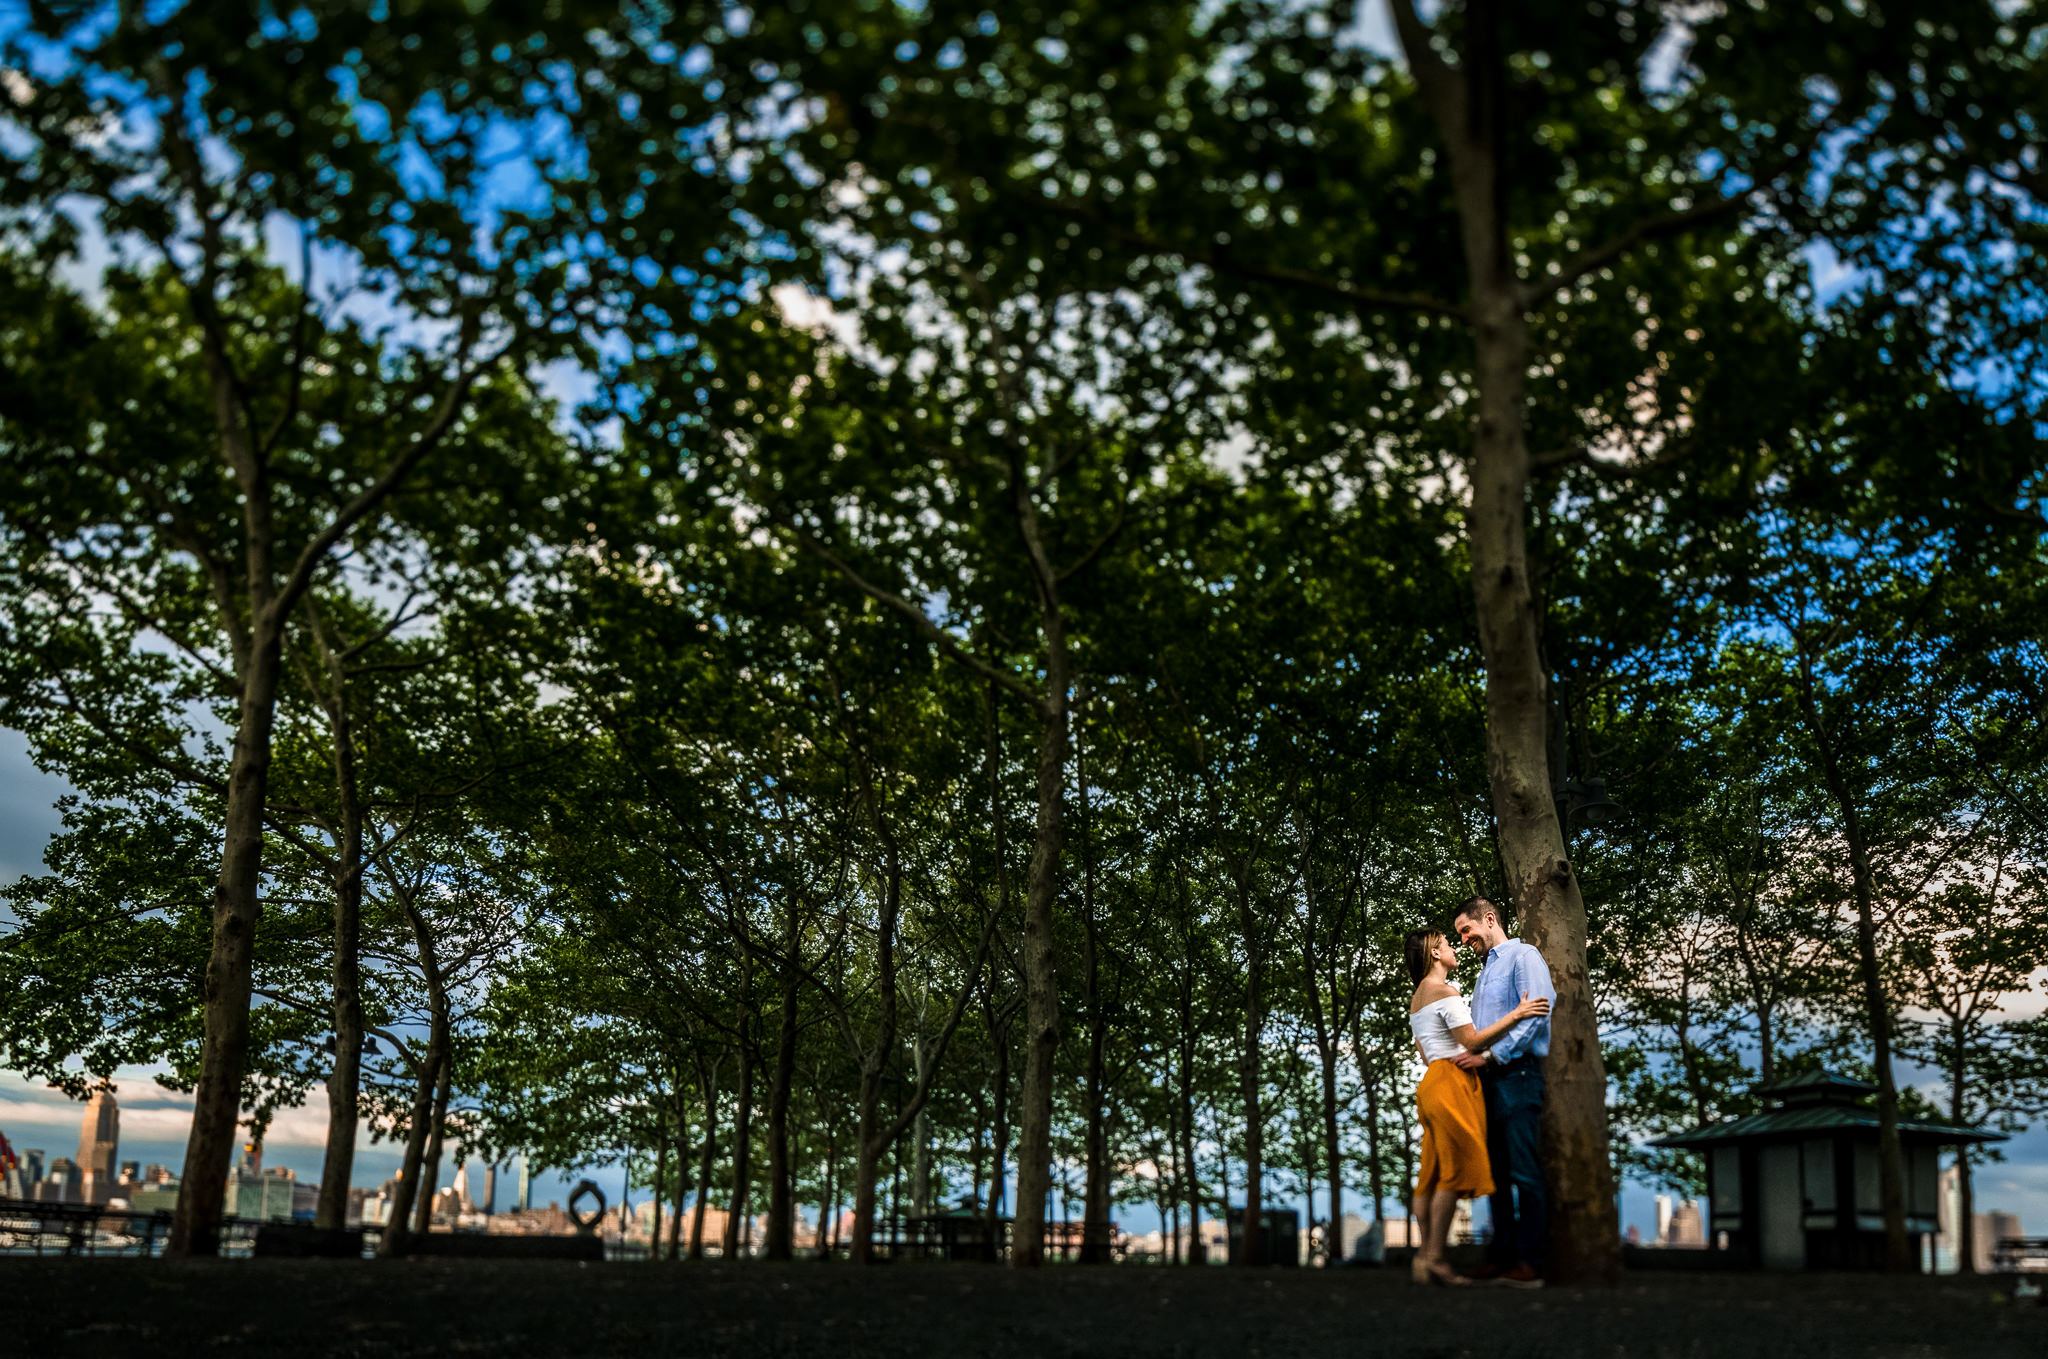 Flanagan-Pier-Hoboken-Engagement-Photos-NYC-Photographer-07.JPG